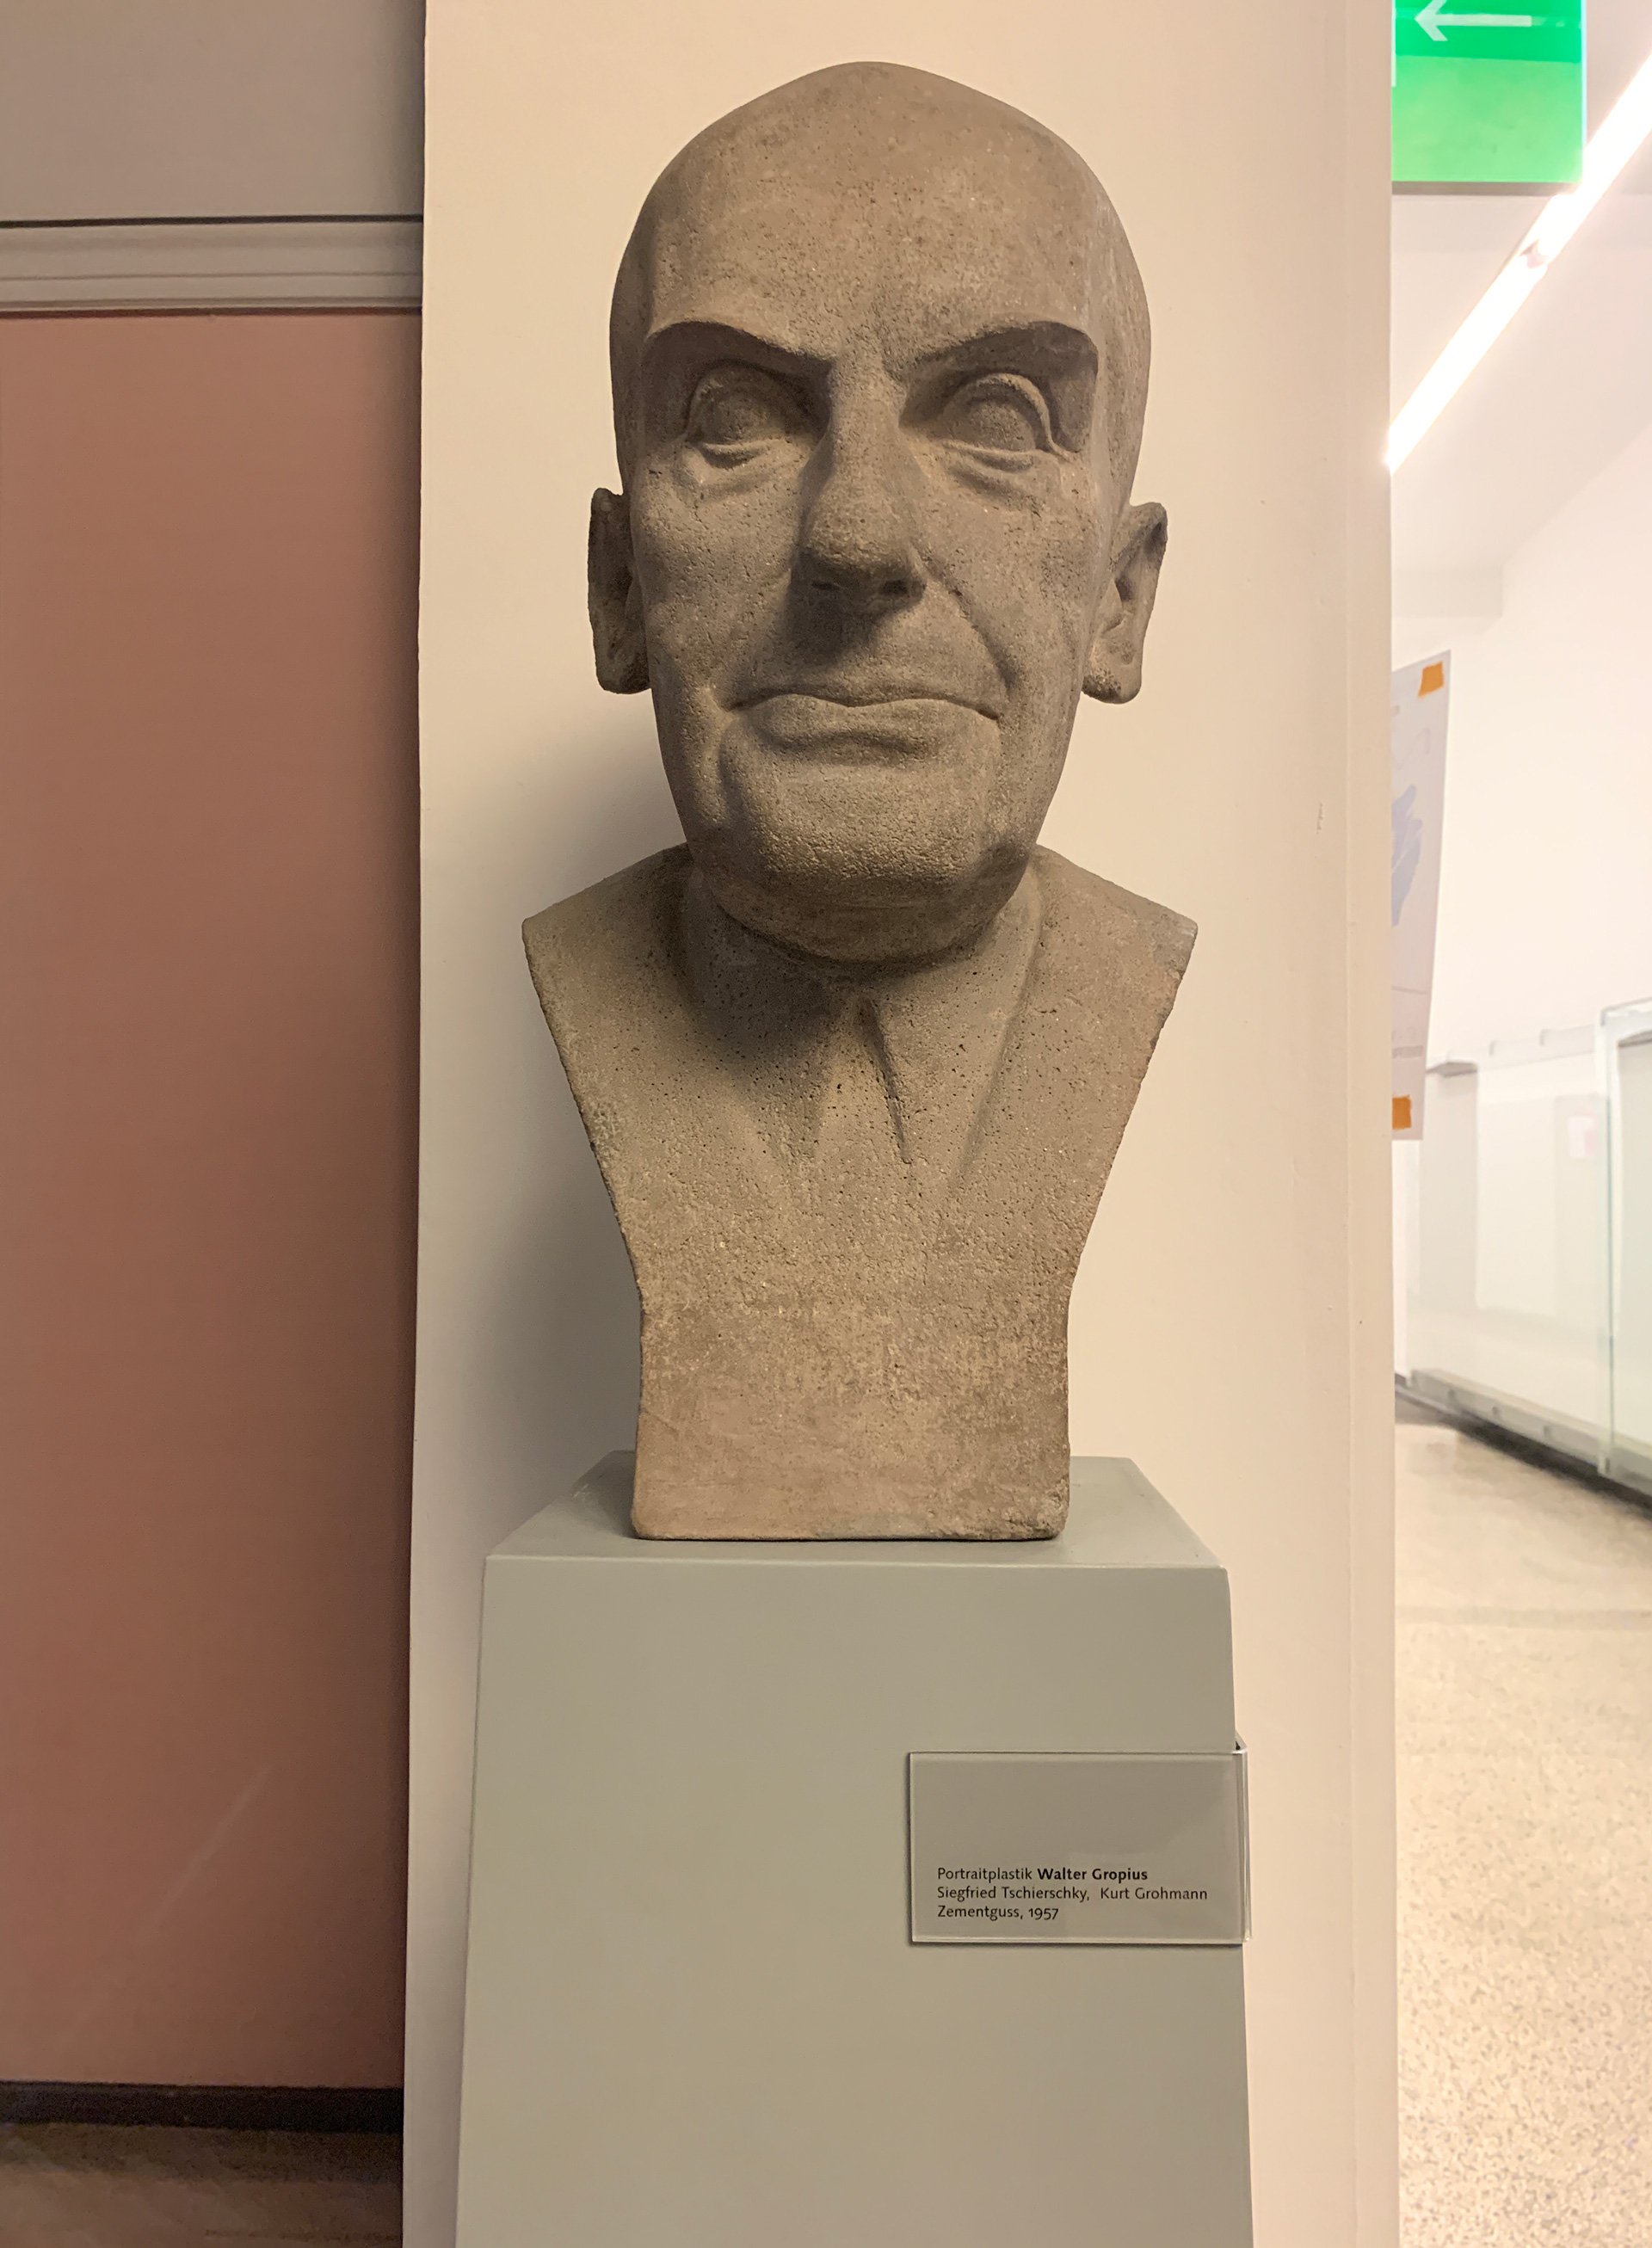 Bust of Walter Gropius at the Weimar Campus where the Bauhaus school started | Bauhaus | Germany | STIRworld